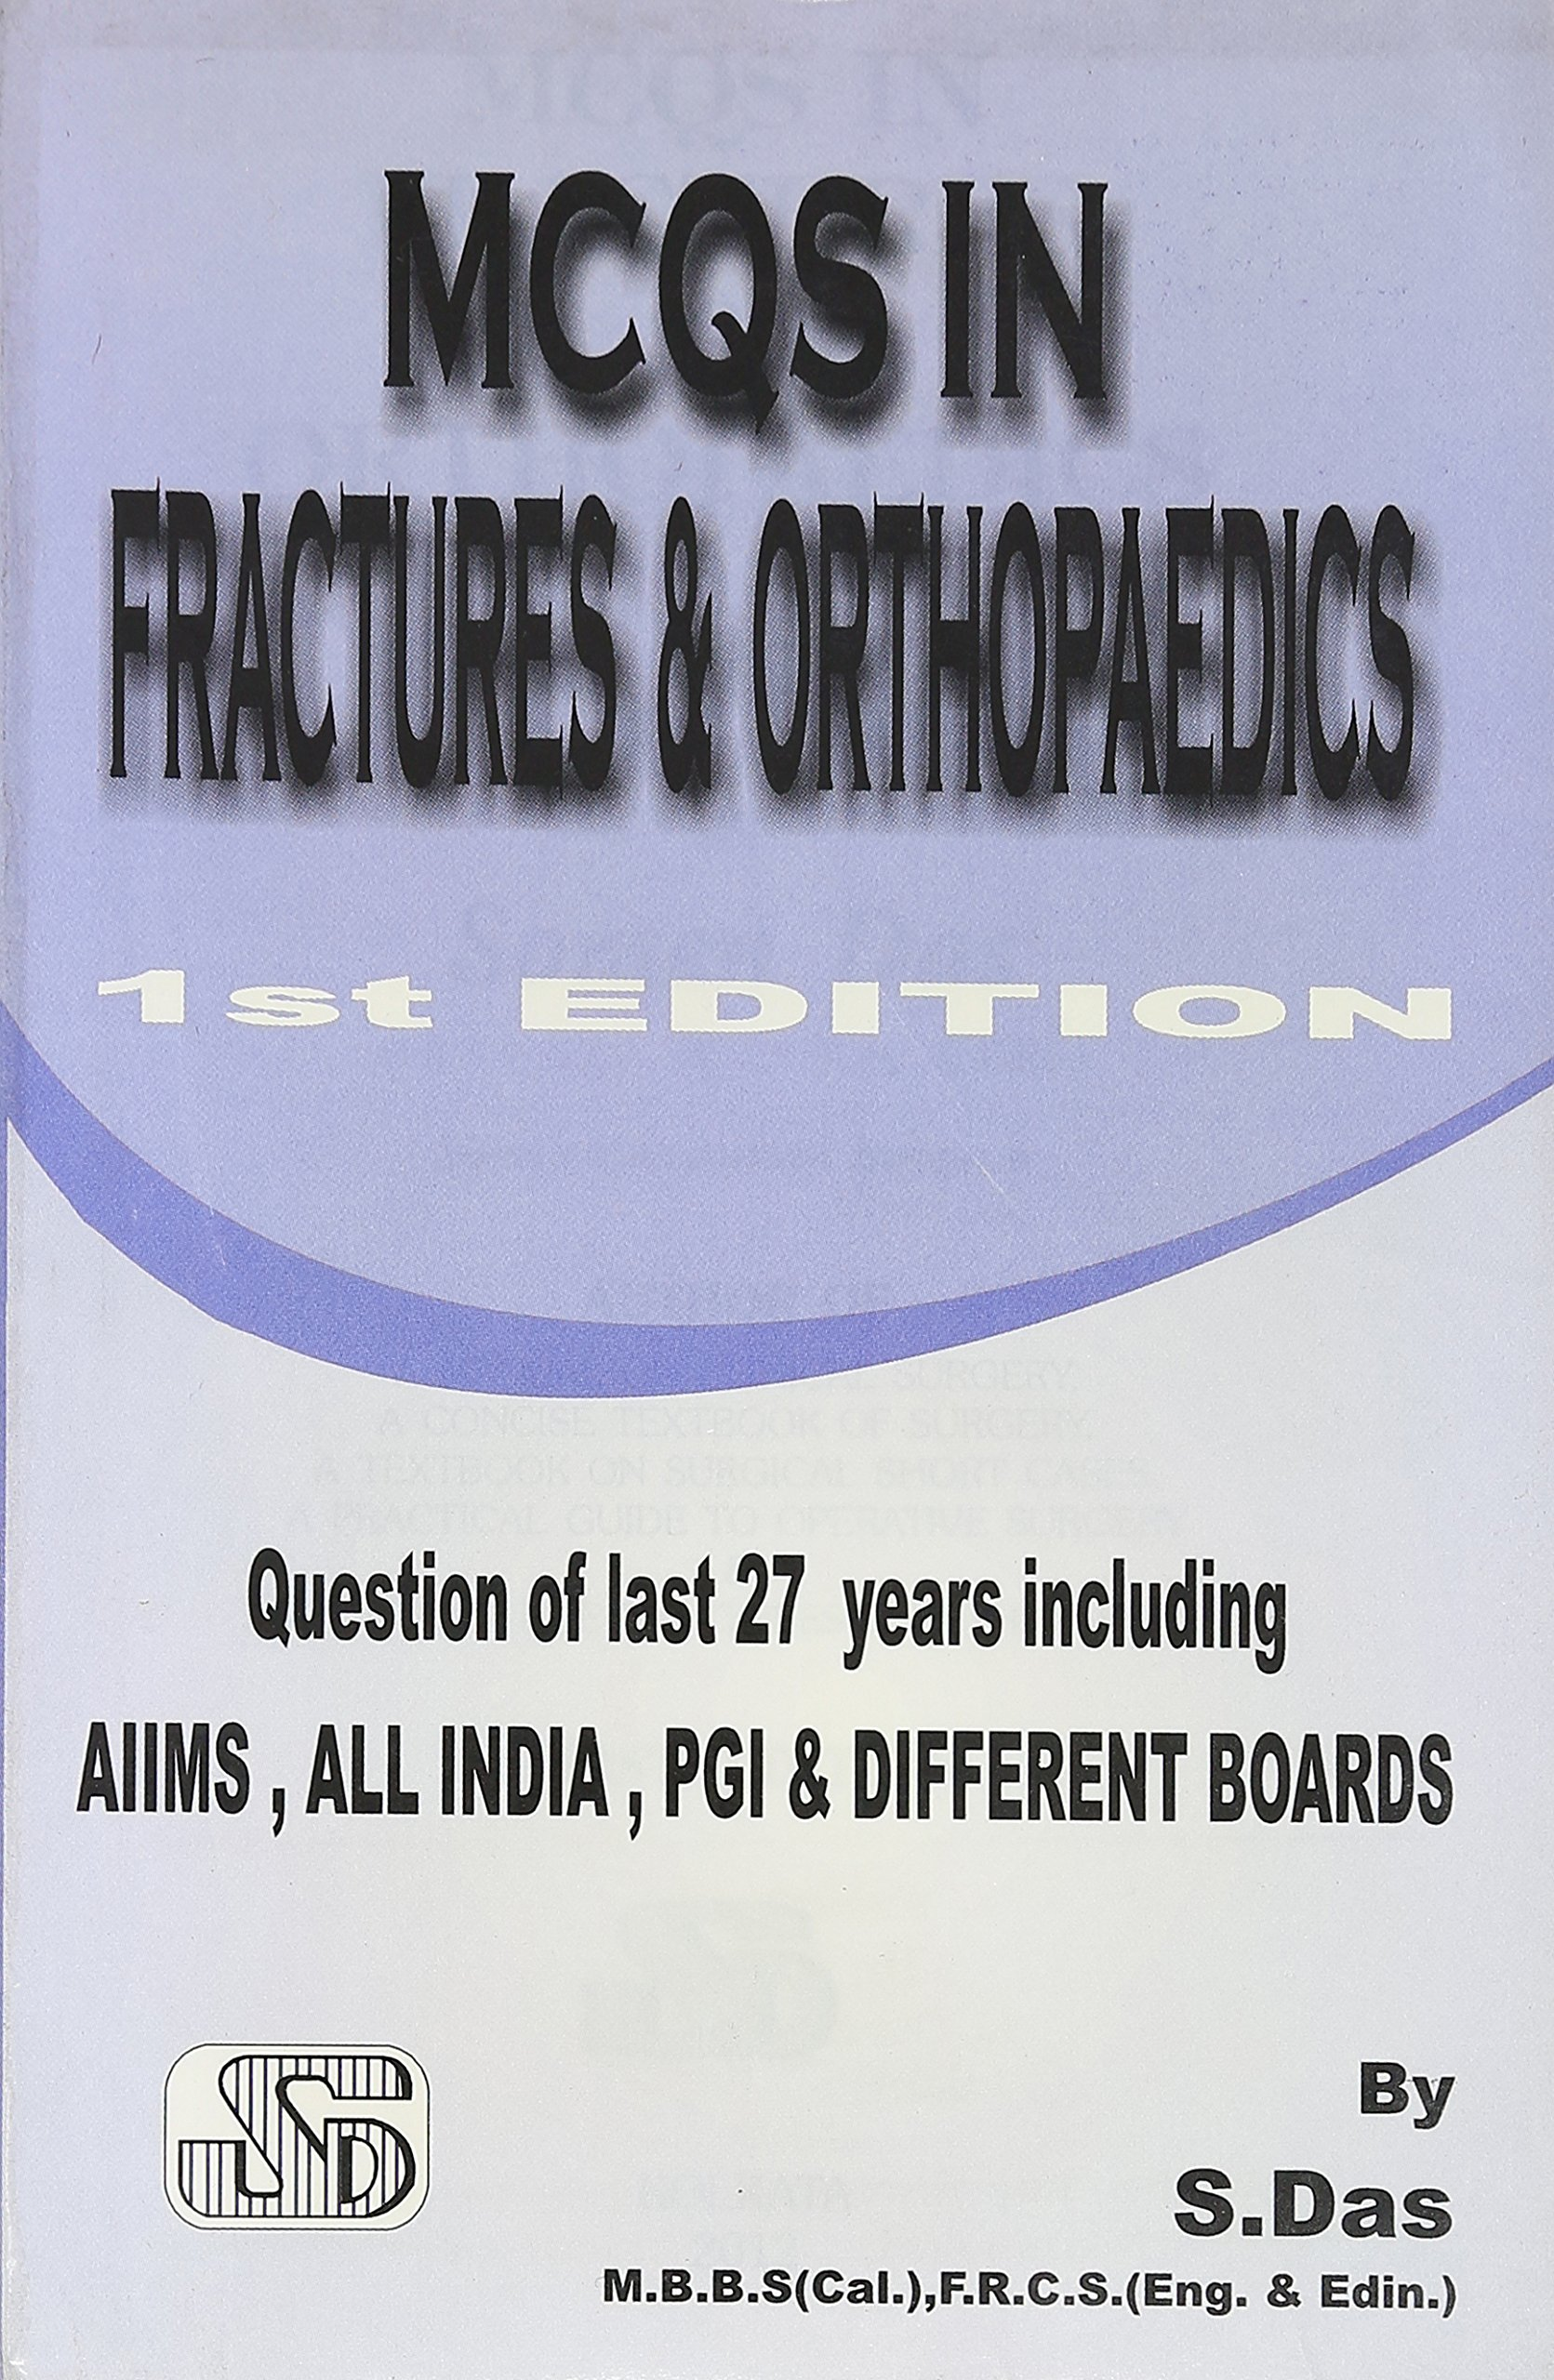 Apleys Textbook Of Orthopaedics Pdf